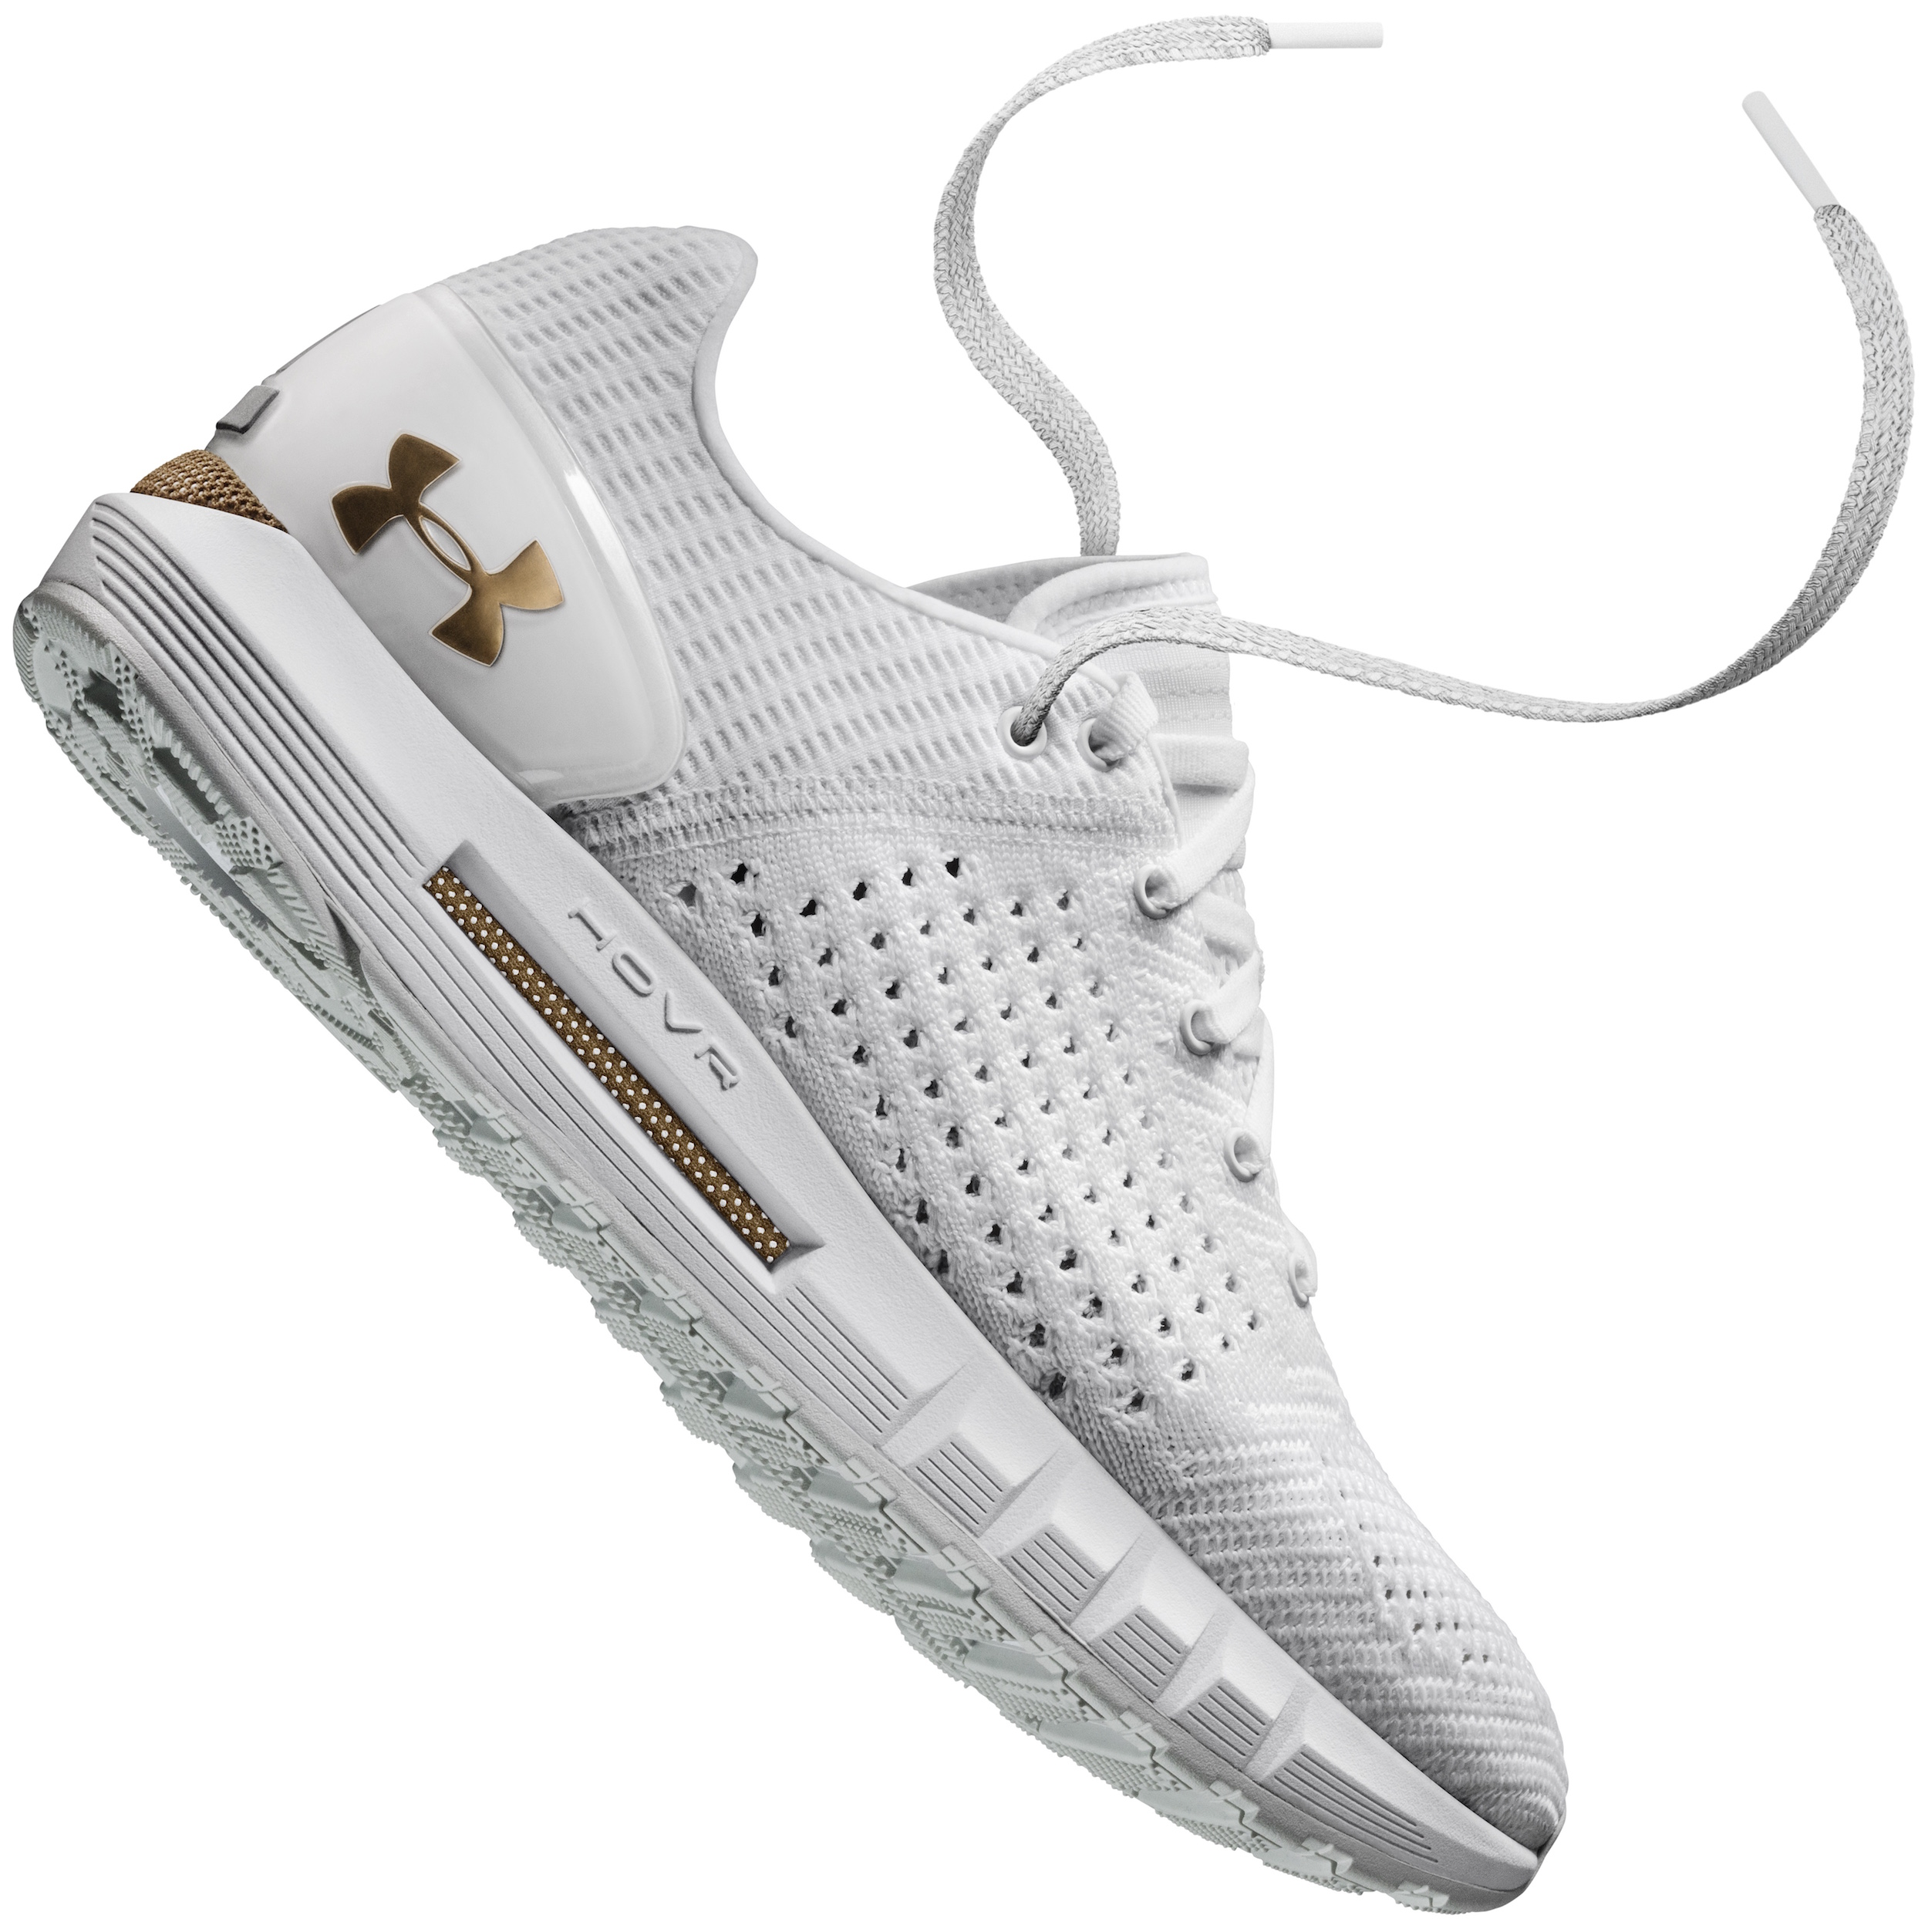 wholesale dealer 35c8b 034f4 Under Armour Unveils the HOVR Phantom and HOVR Sonic ...